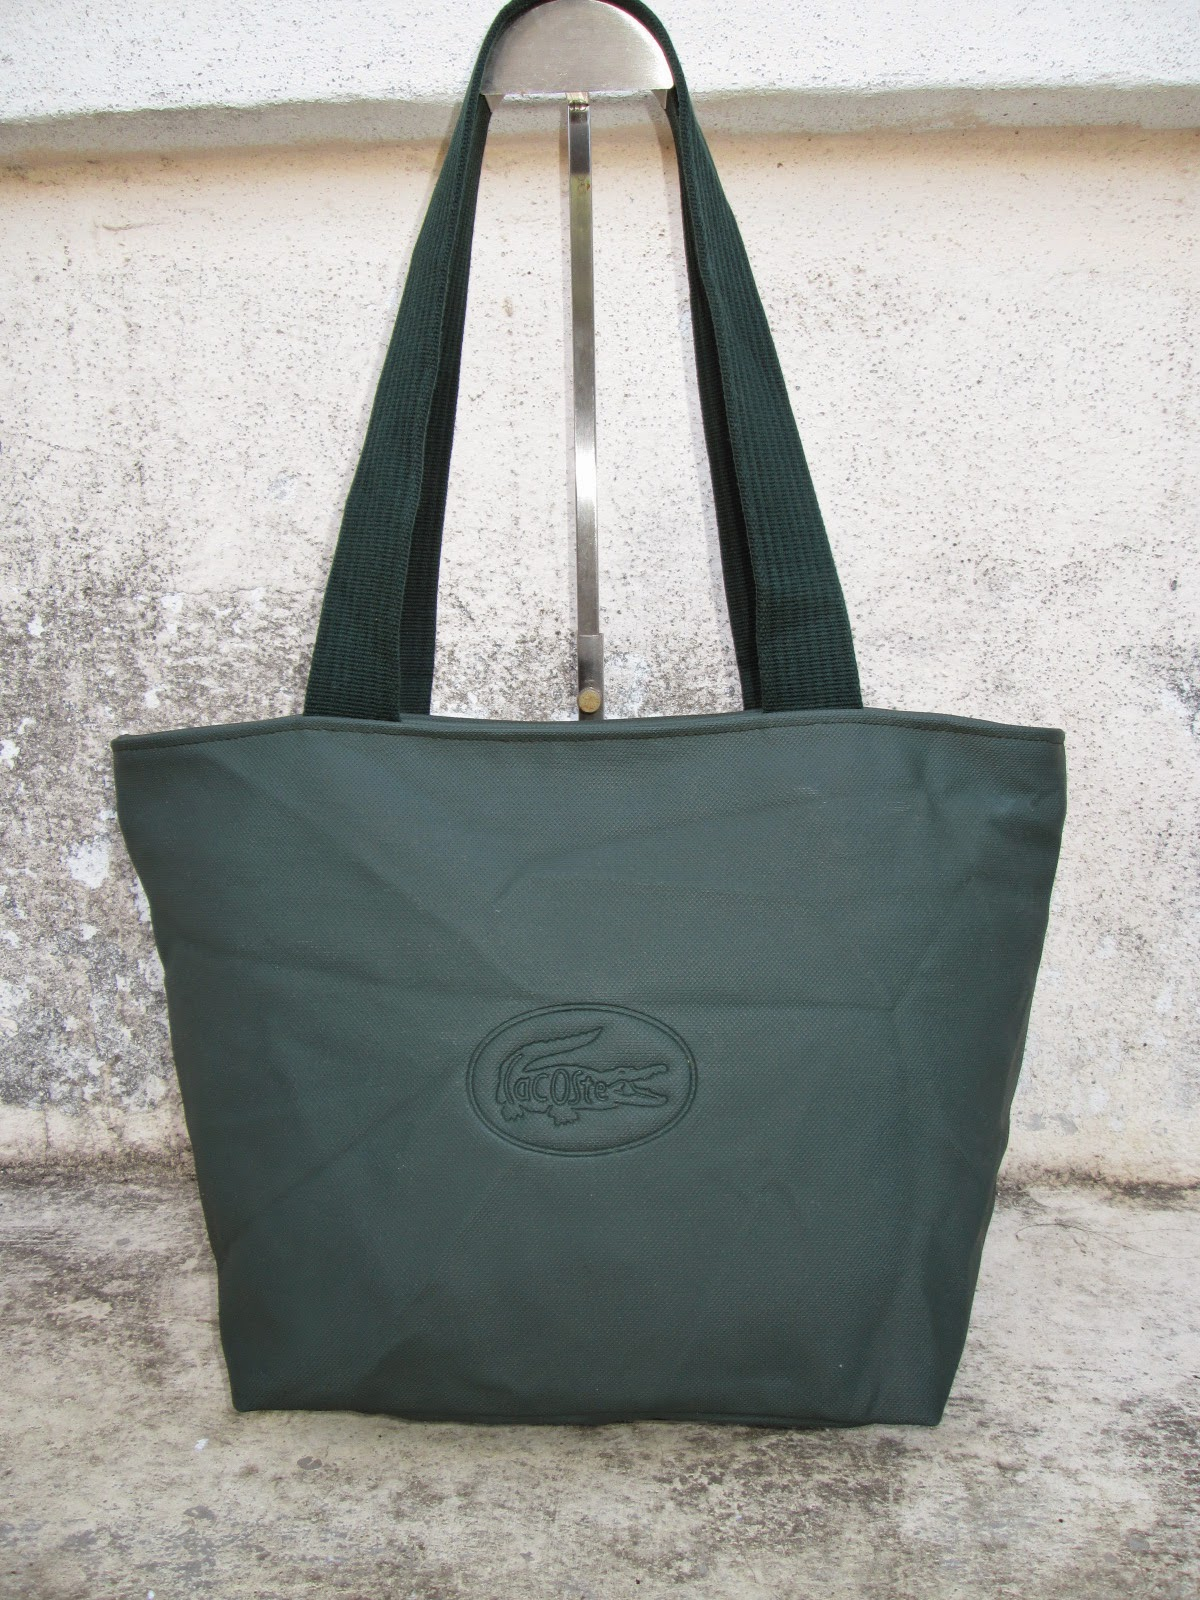 d0rayakeebag authentic lacoste green tote bag sold. Black Bedroom Furniture Sets. Home Design Ideas